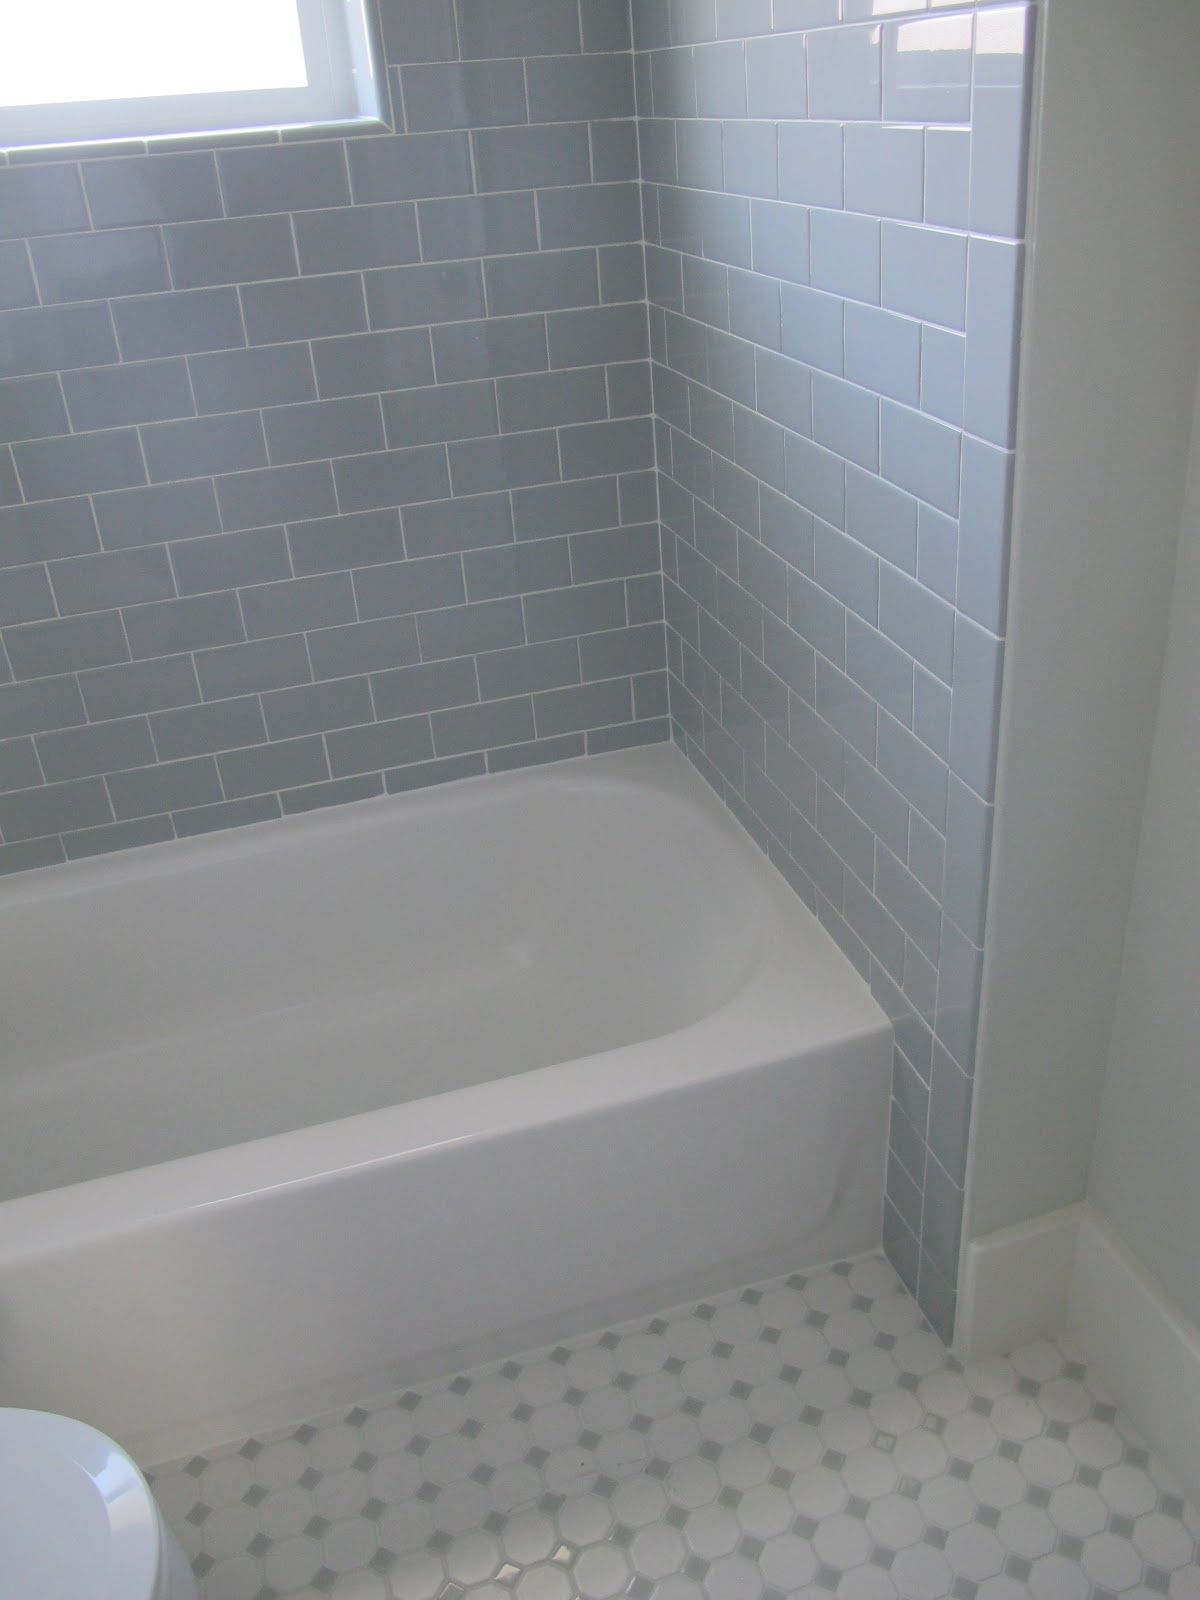 Delightful Did The Same 3x6 Desert Gray Subway Tile From Dal Tile But The Flooring Is  Different